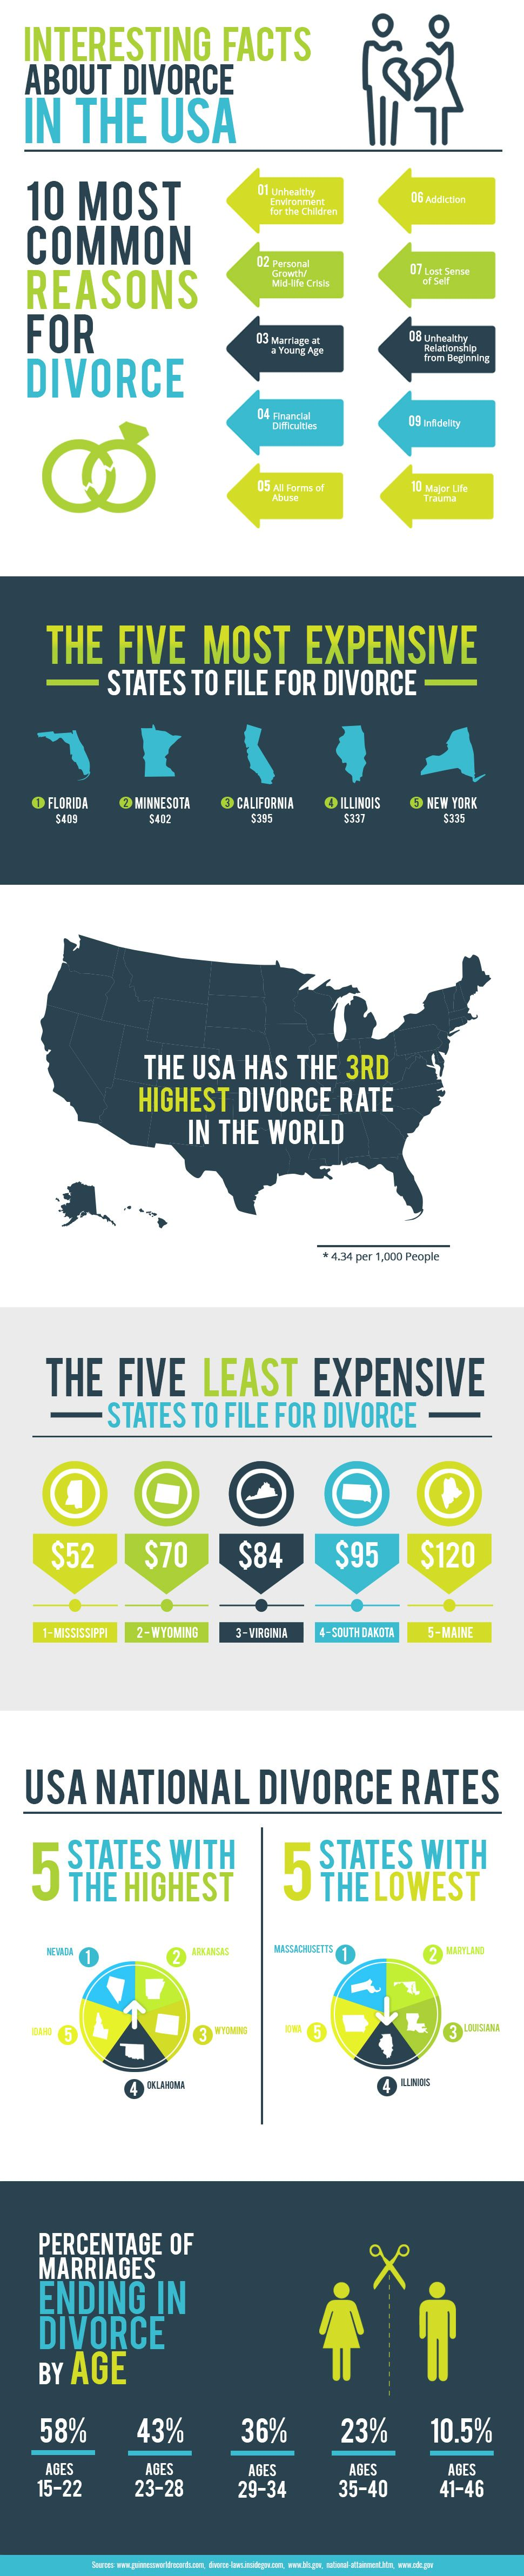 Interesting Facts About Divorce In The USA